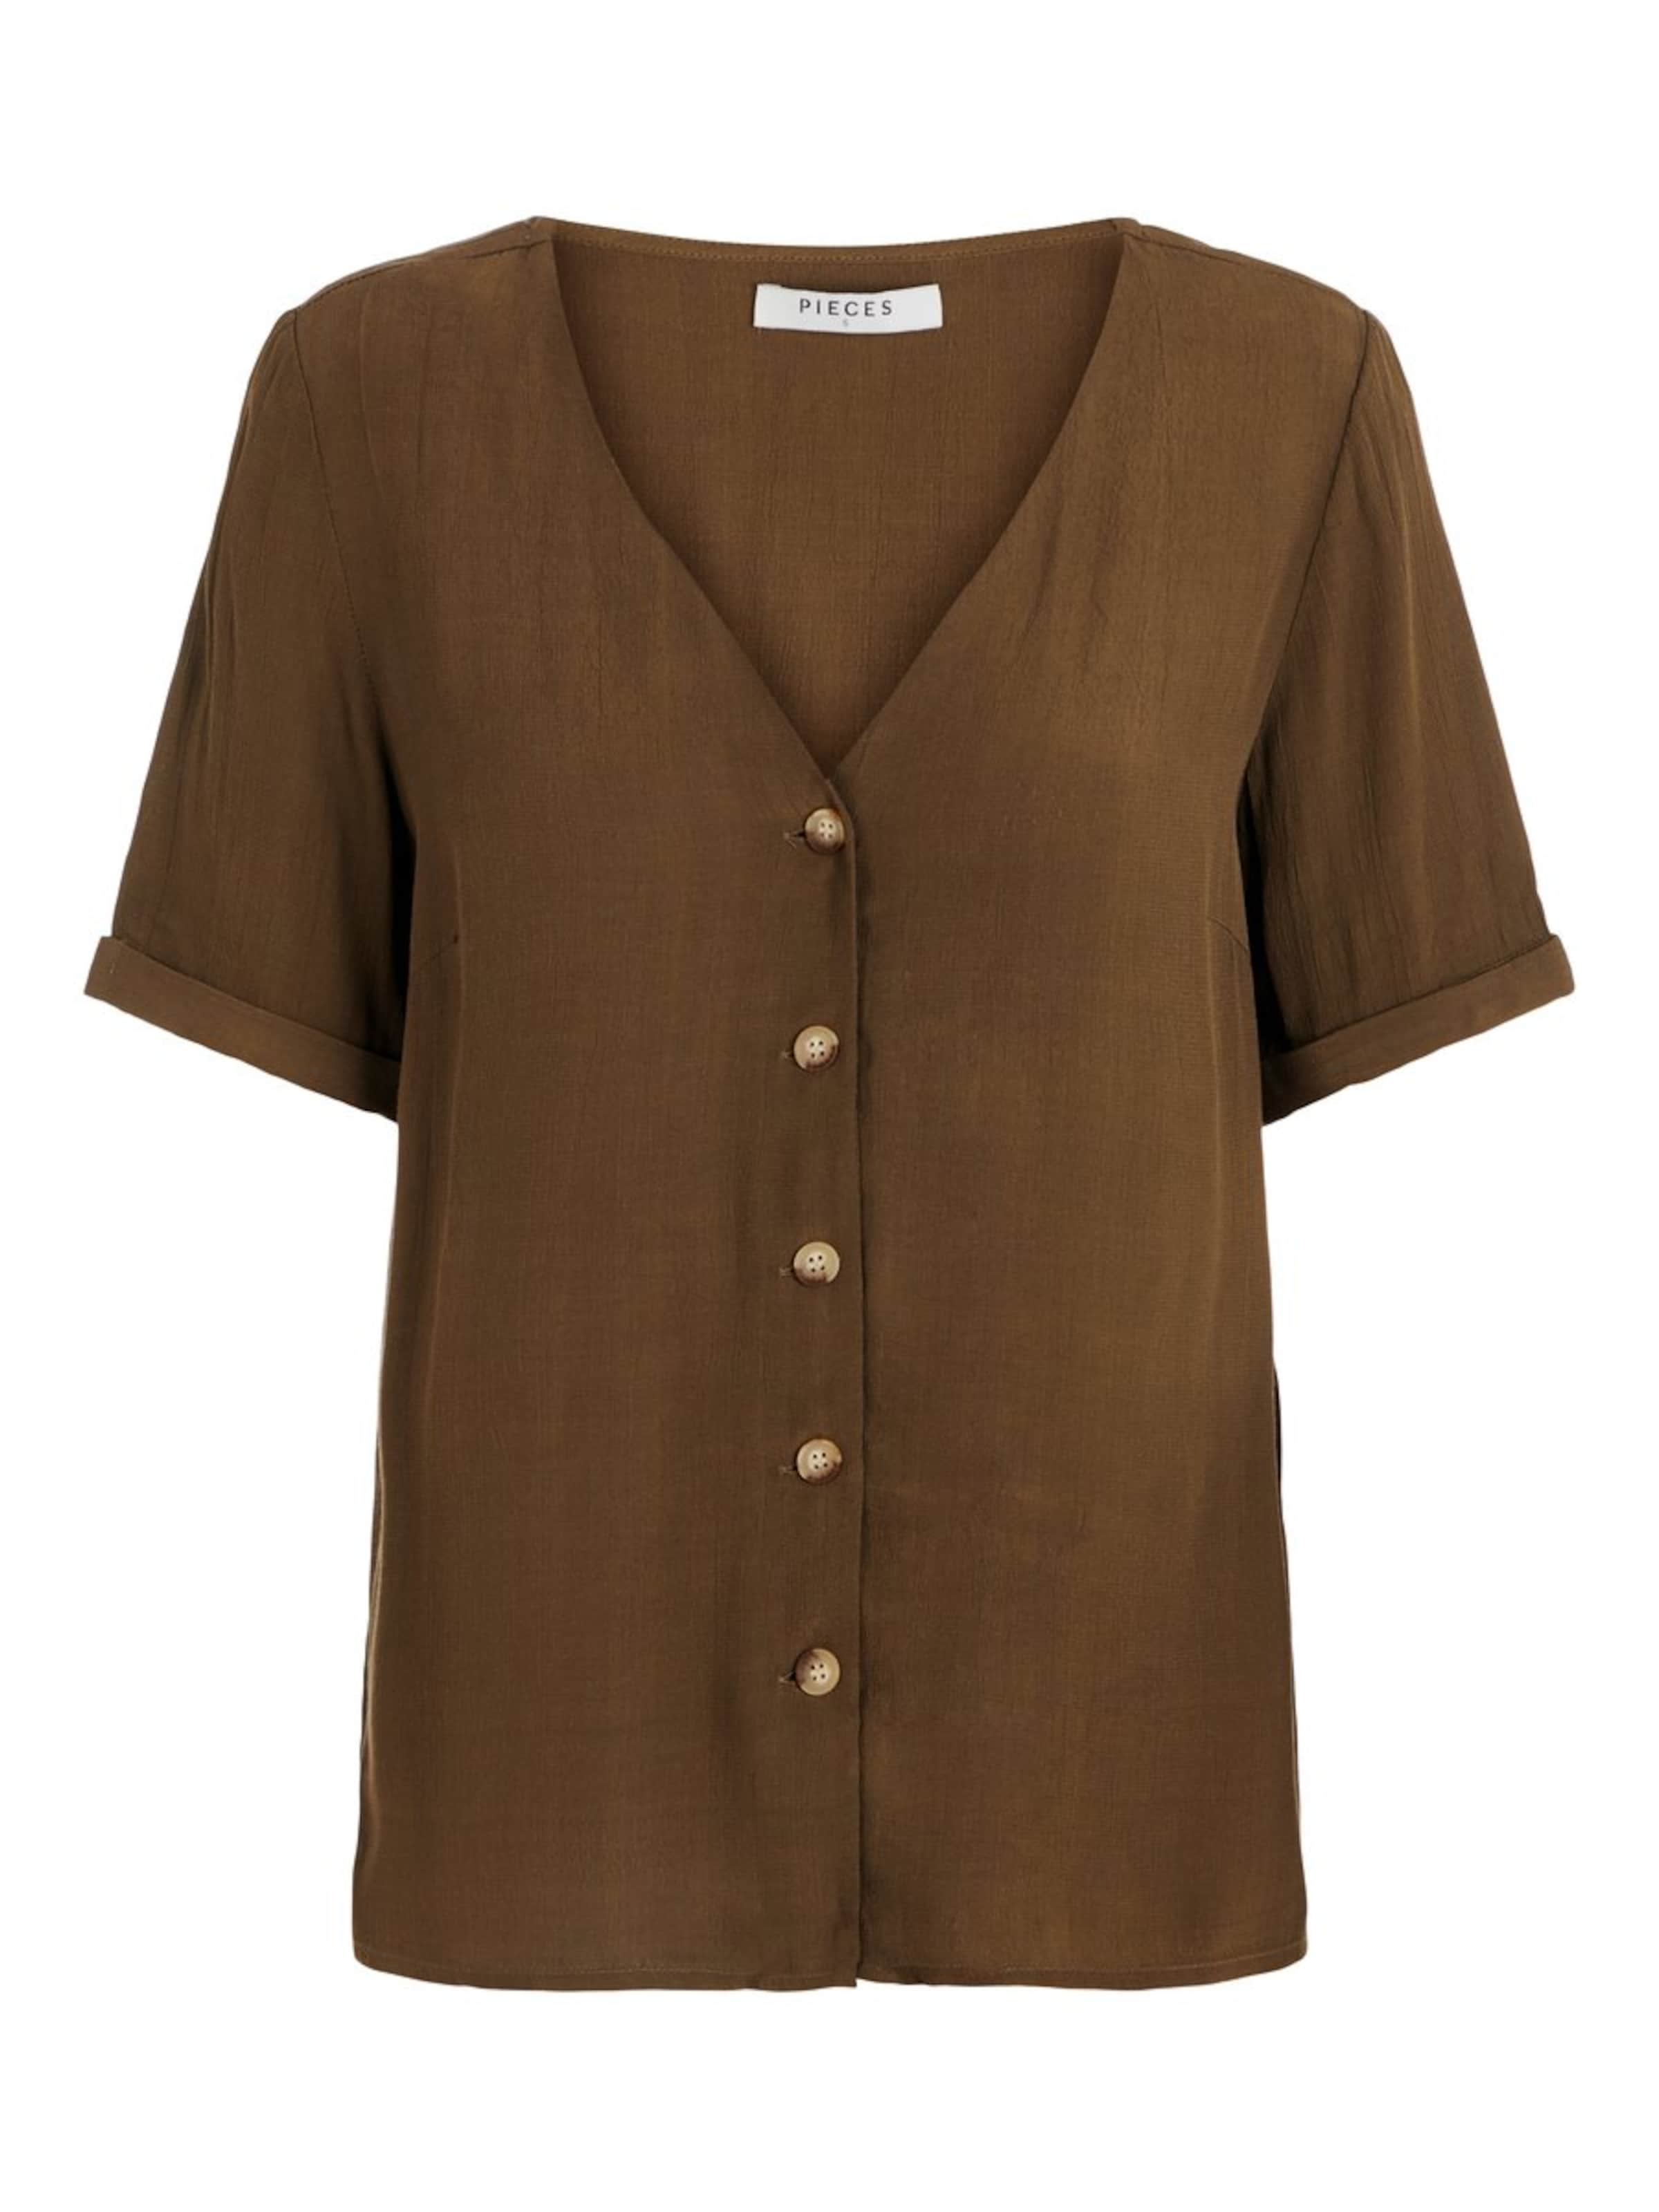 Blouse Bruin Pieces Pieces In Blouse Pieces Bruin In Blouse wv8N0mn